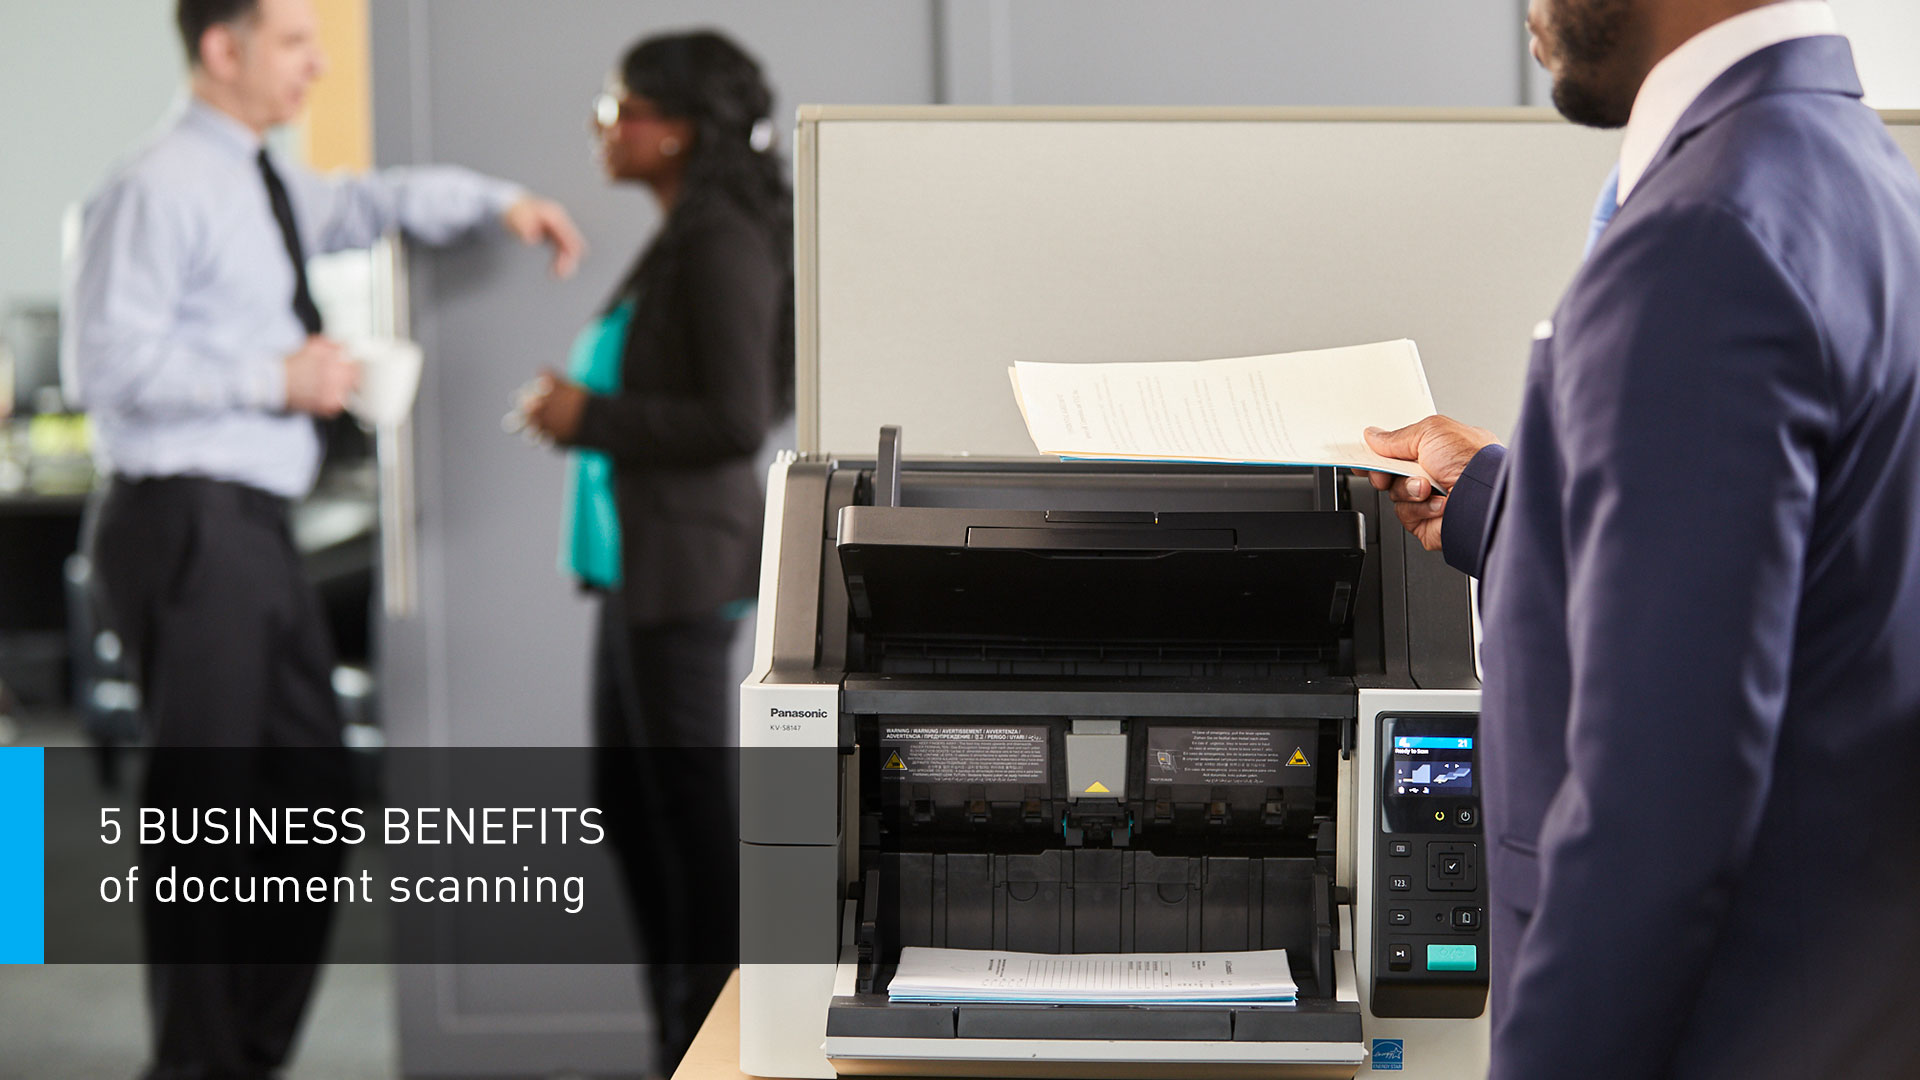 5 Business Benefits of Document Scanning